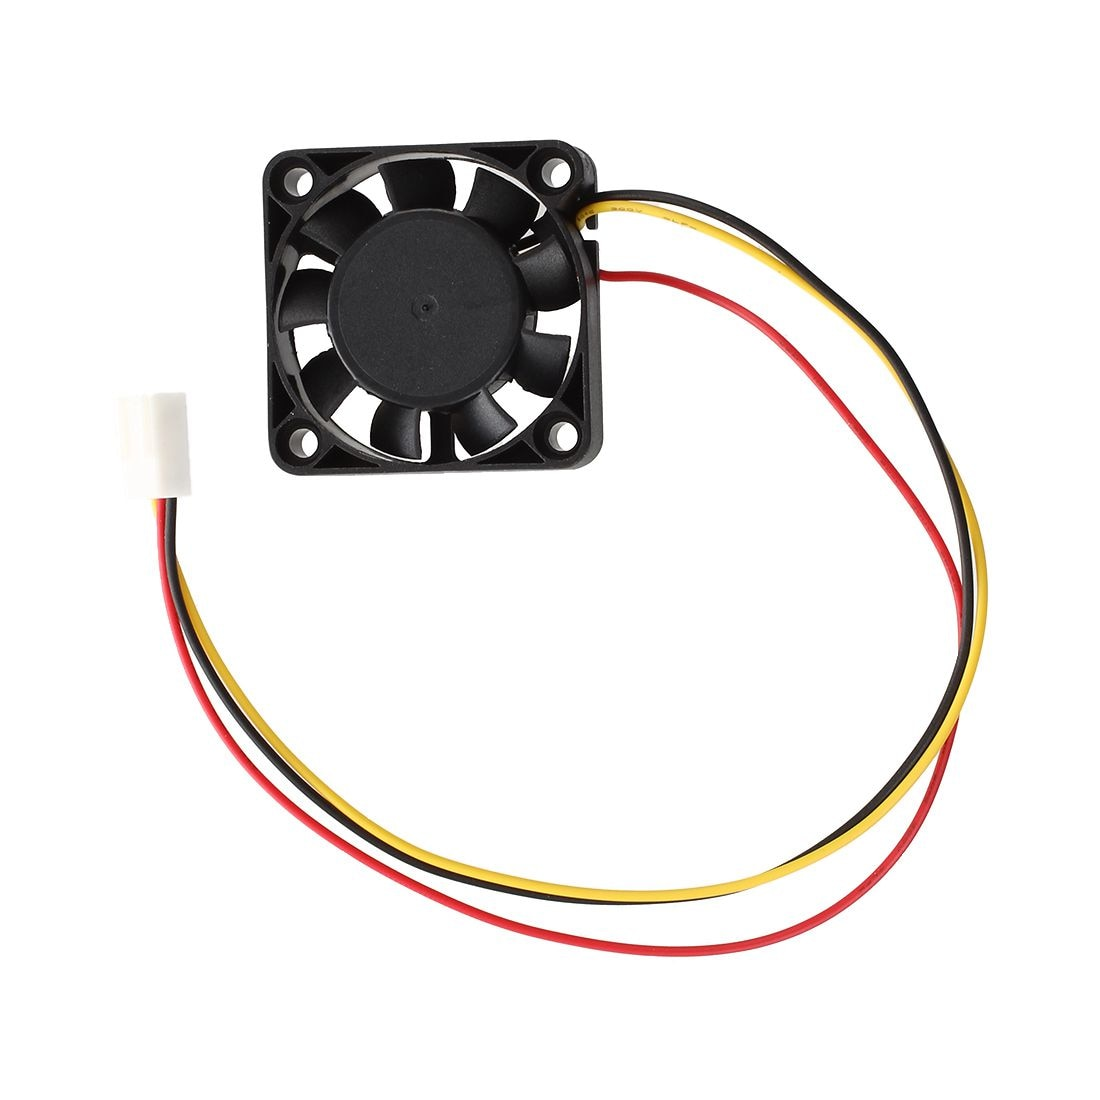 2 Pcs 3 Pin 40mm Square PC Computer Cooling Fan DC 12V Black